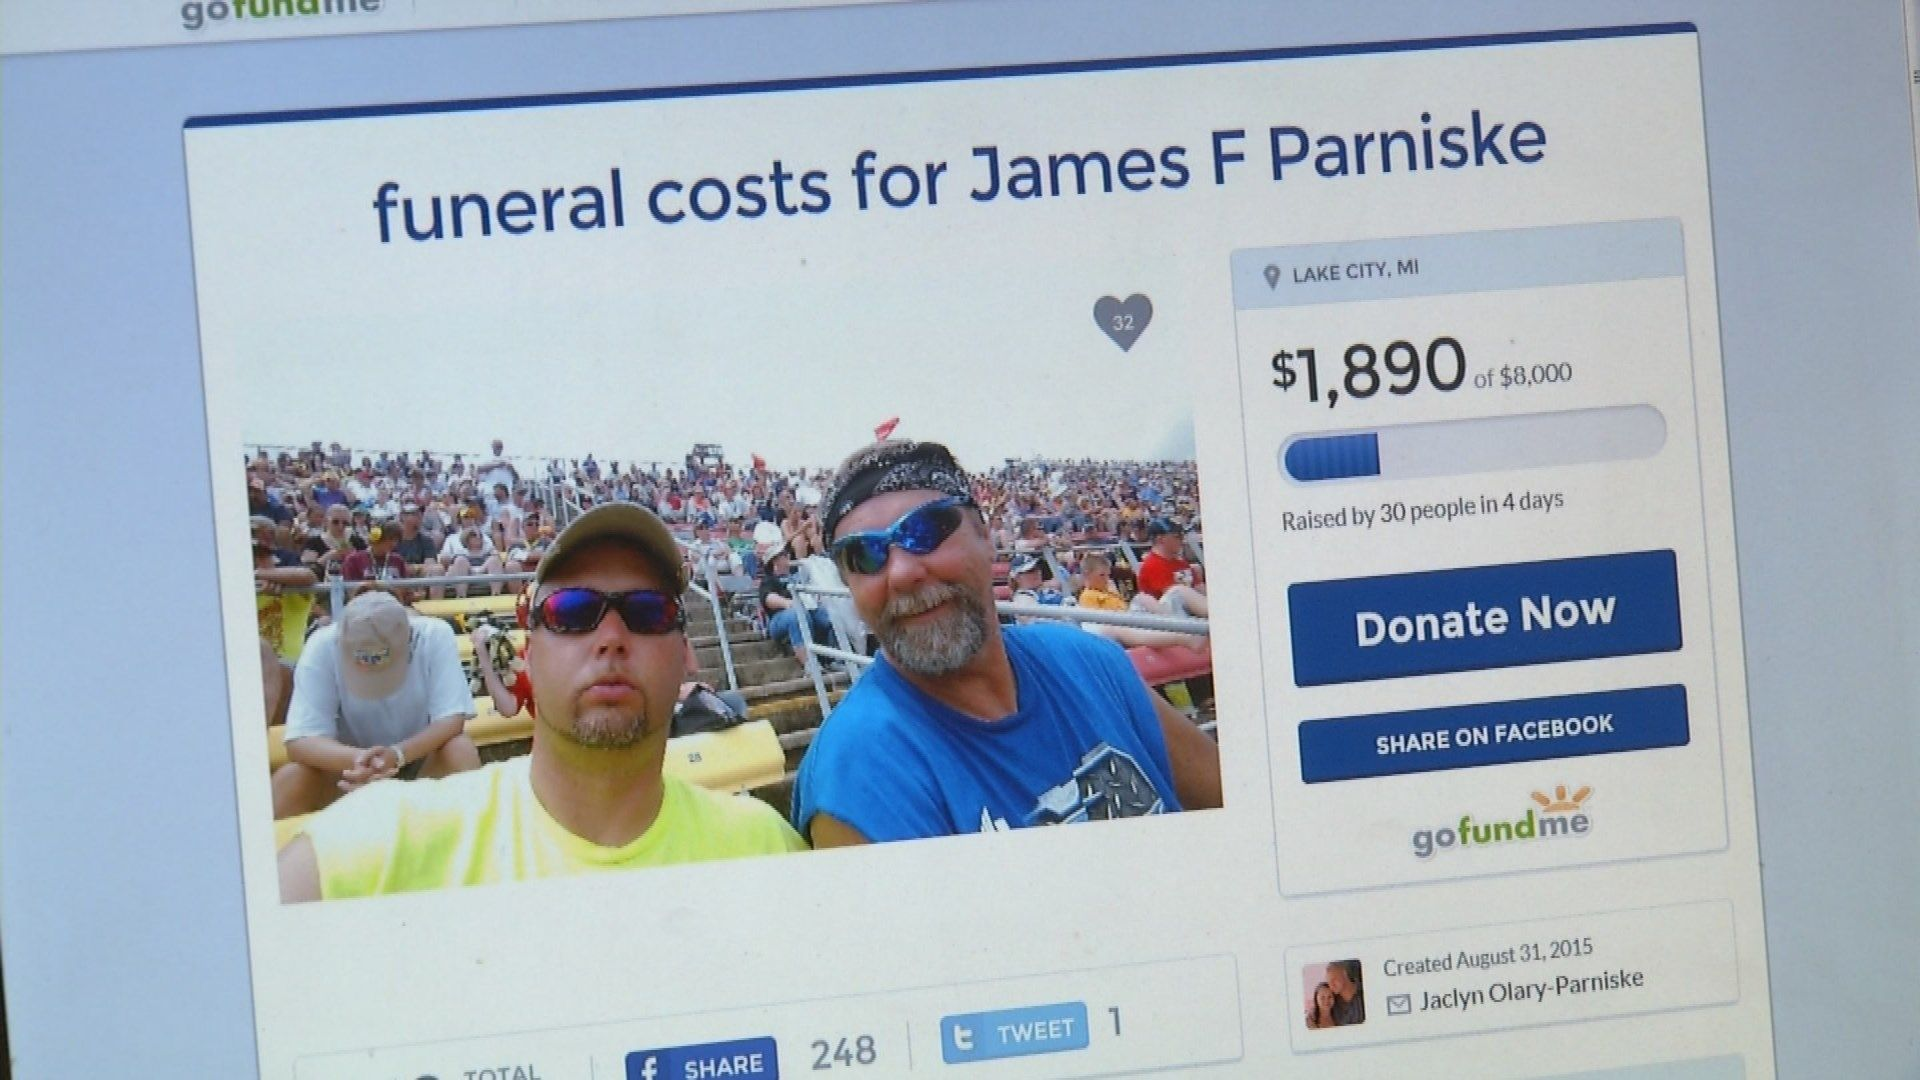 Lake City Chamber Rallies To Help Co-Worker After Sudden Loss - Northern Michigan's News Leader